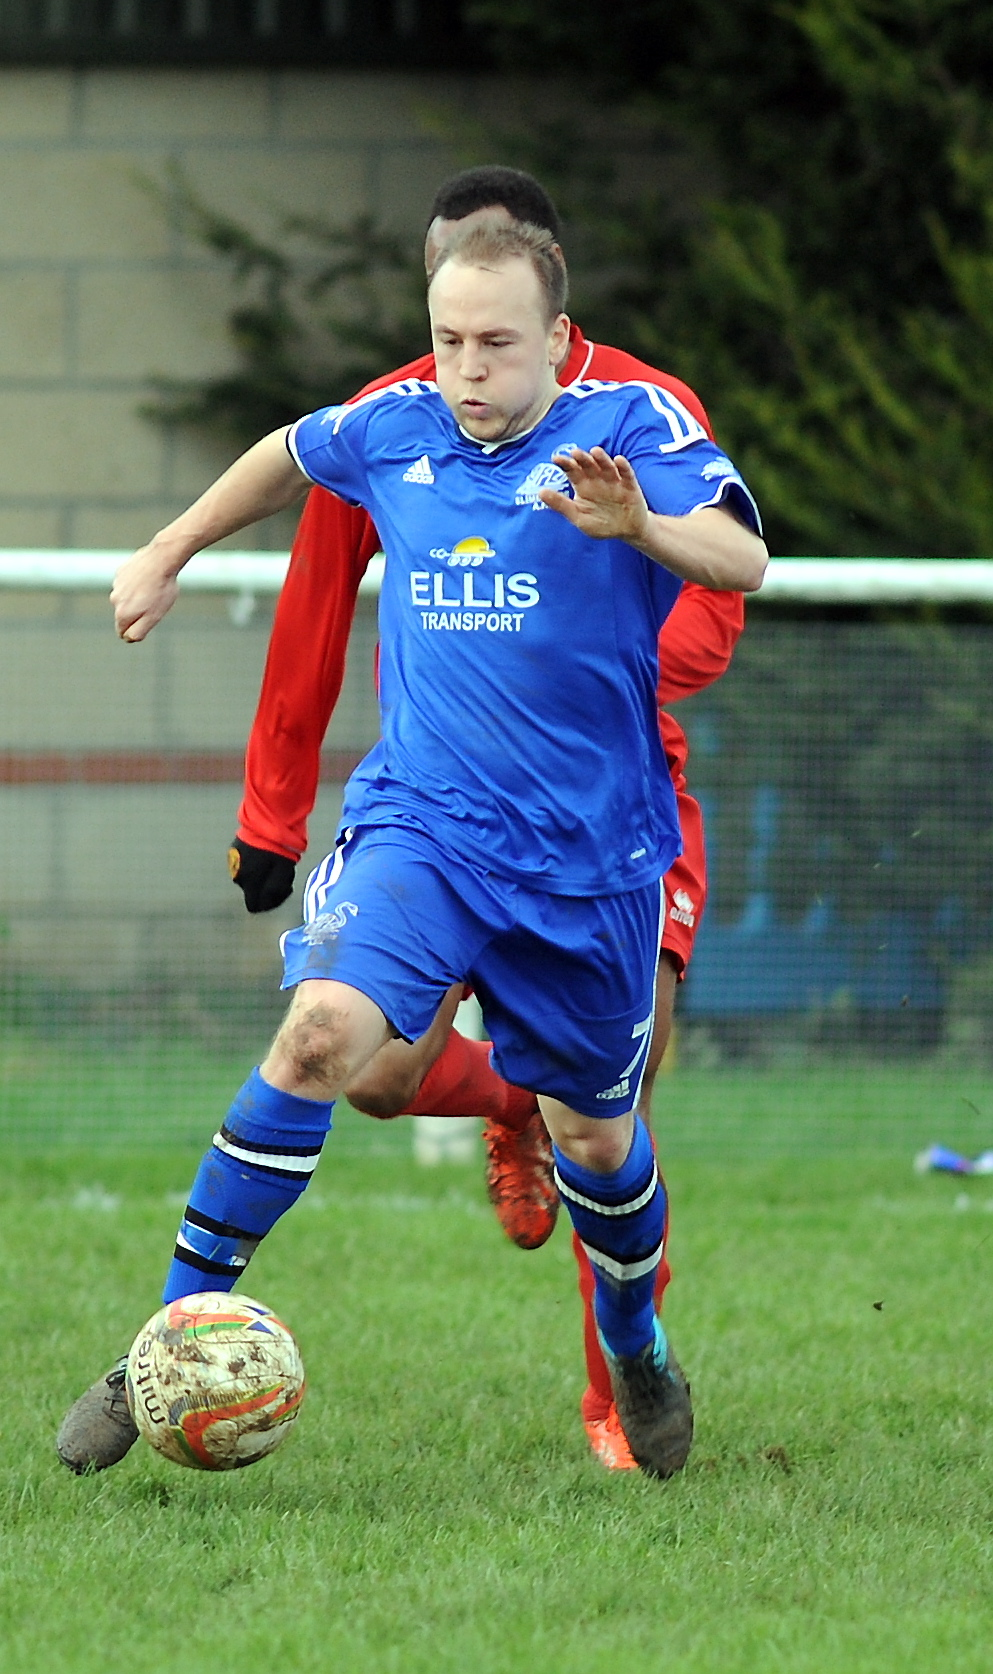 Slimbridge's Sean Lawson scored twice against Shortwood